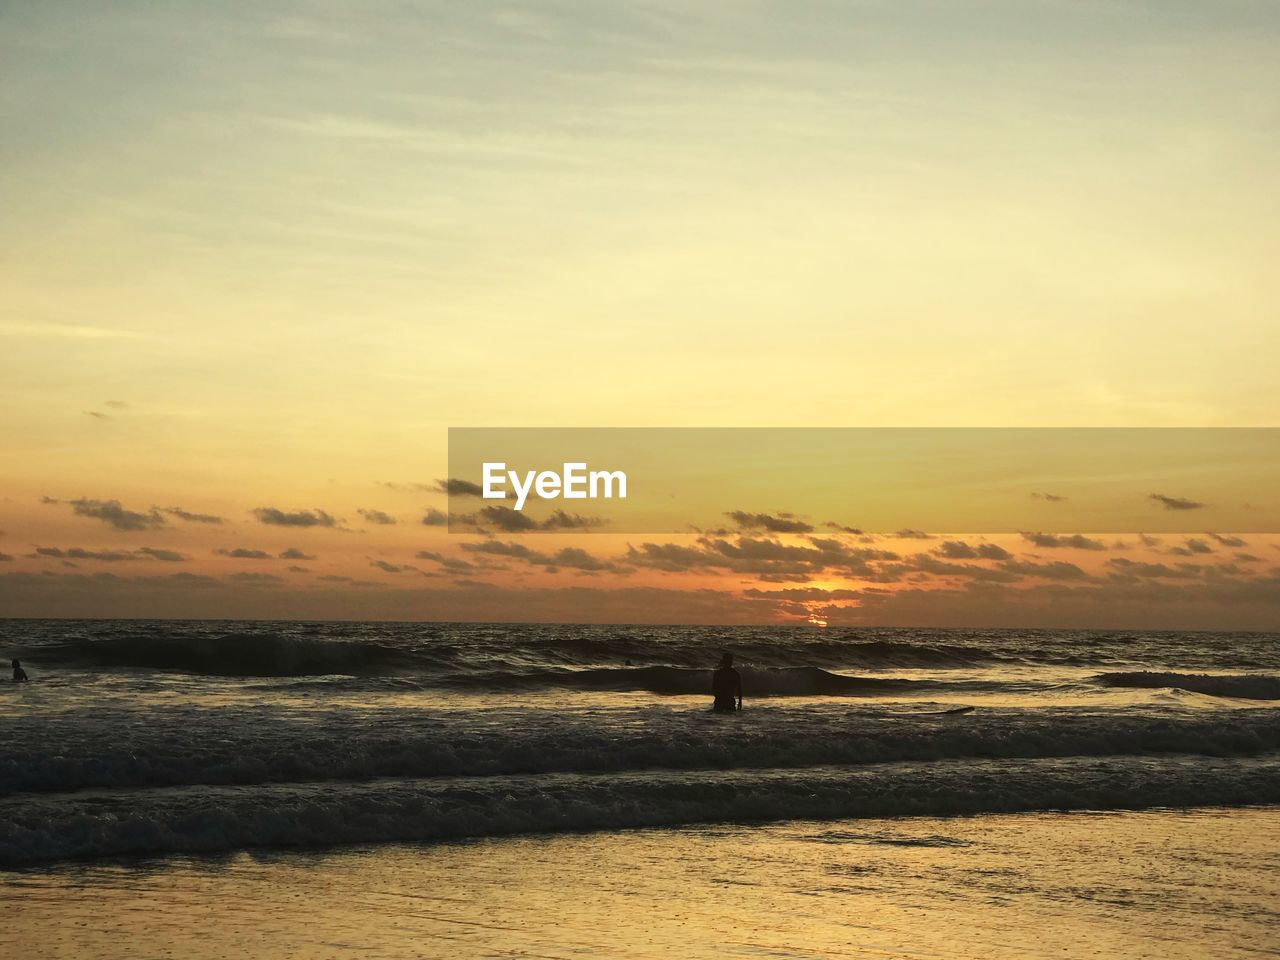 sunset, sky, sea, water, beauty in nature, horizon over water, scenics - nature, orange color, horizon, land, cloud - sky, silhouette, beach, tranquility, nature, tranquil scene, motion, wave, outdoors